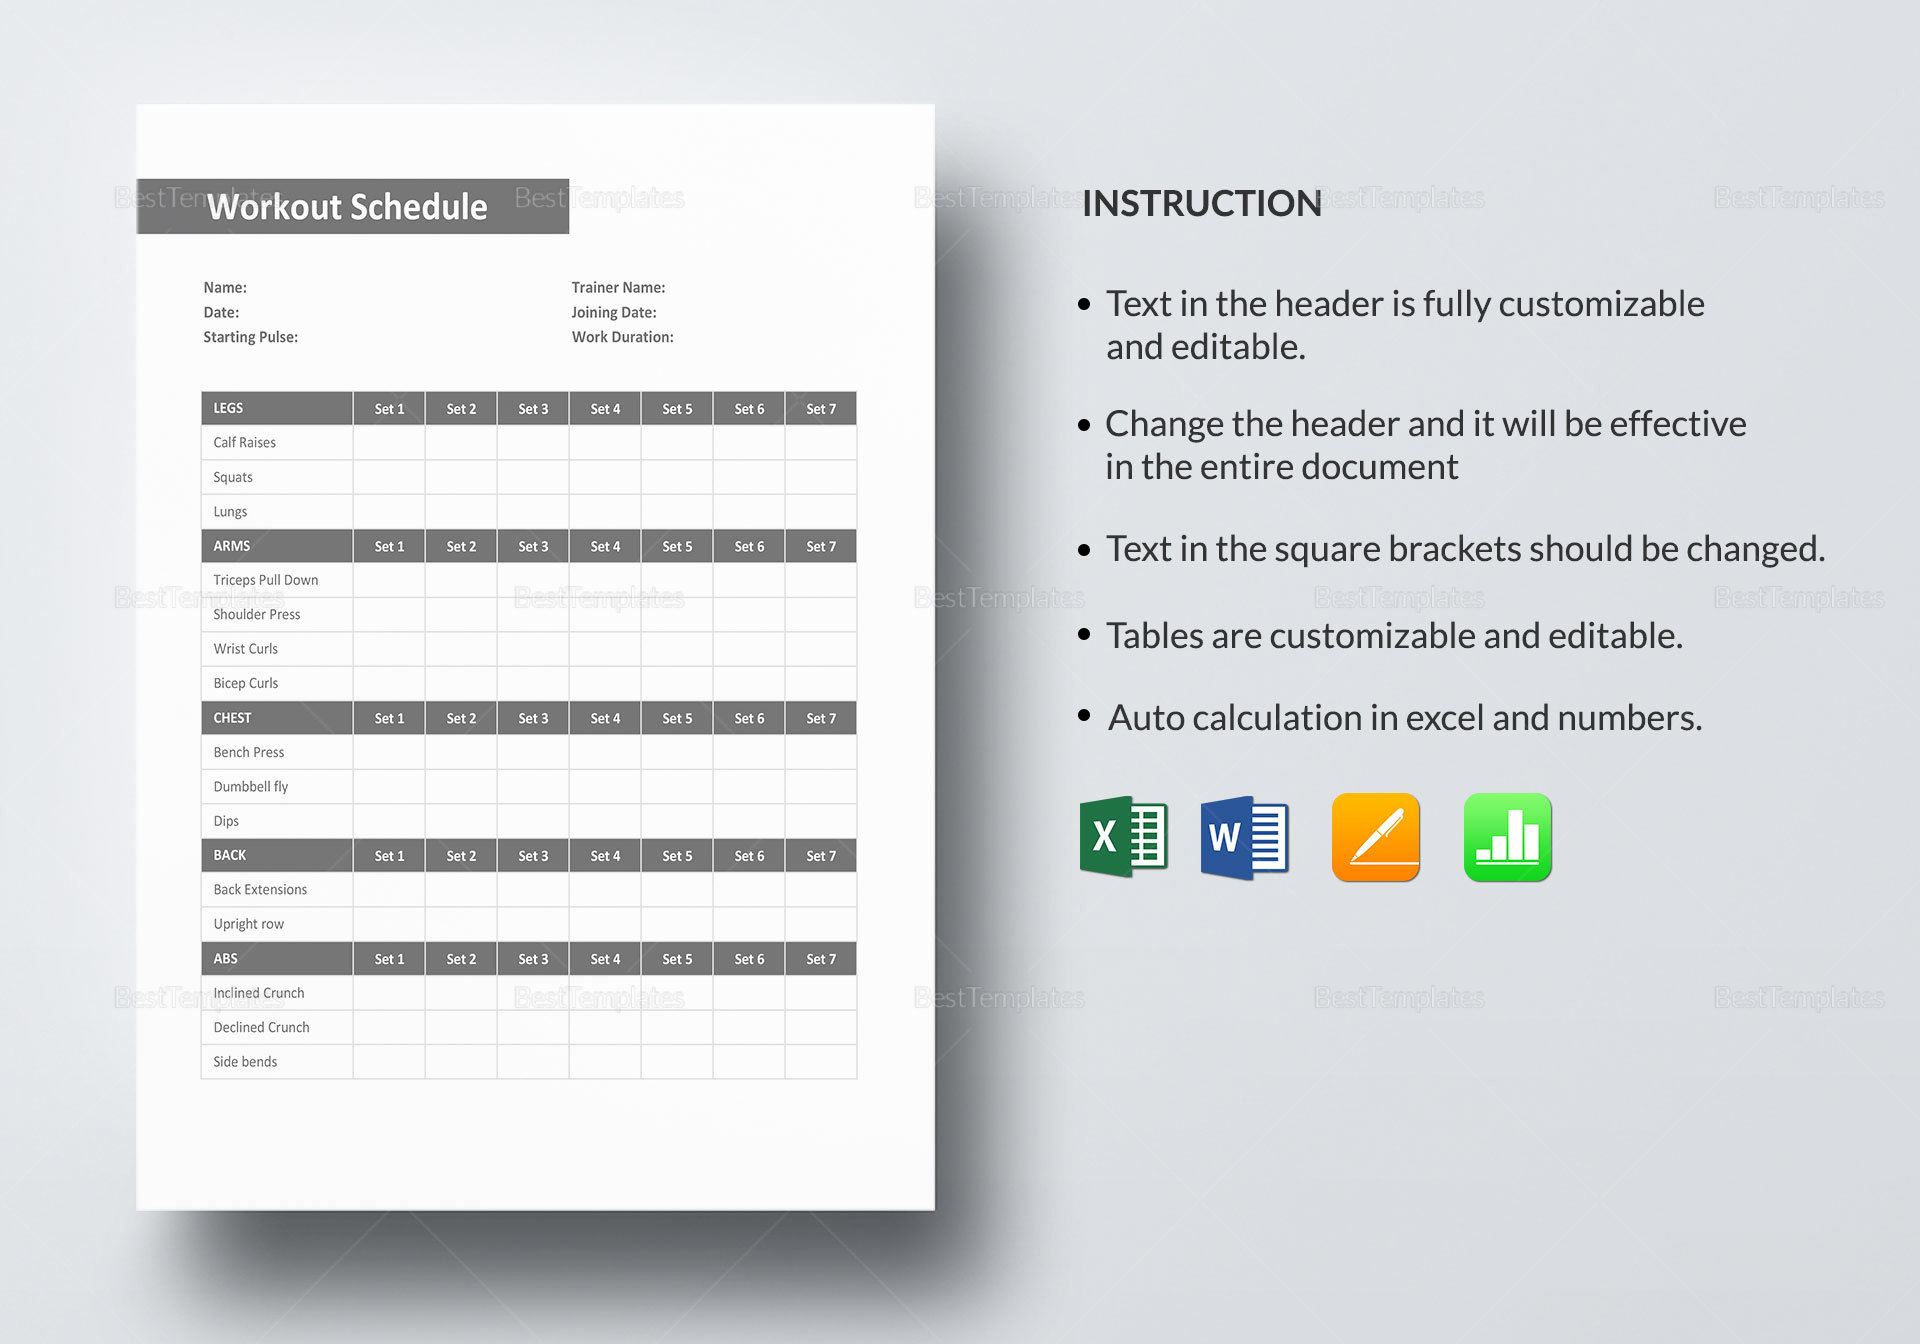 Weekly Workout Schedule Template In Word, Excel, Apple